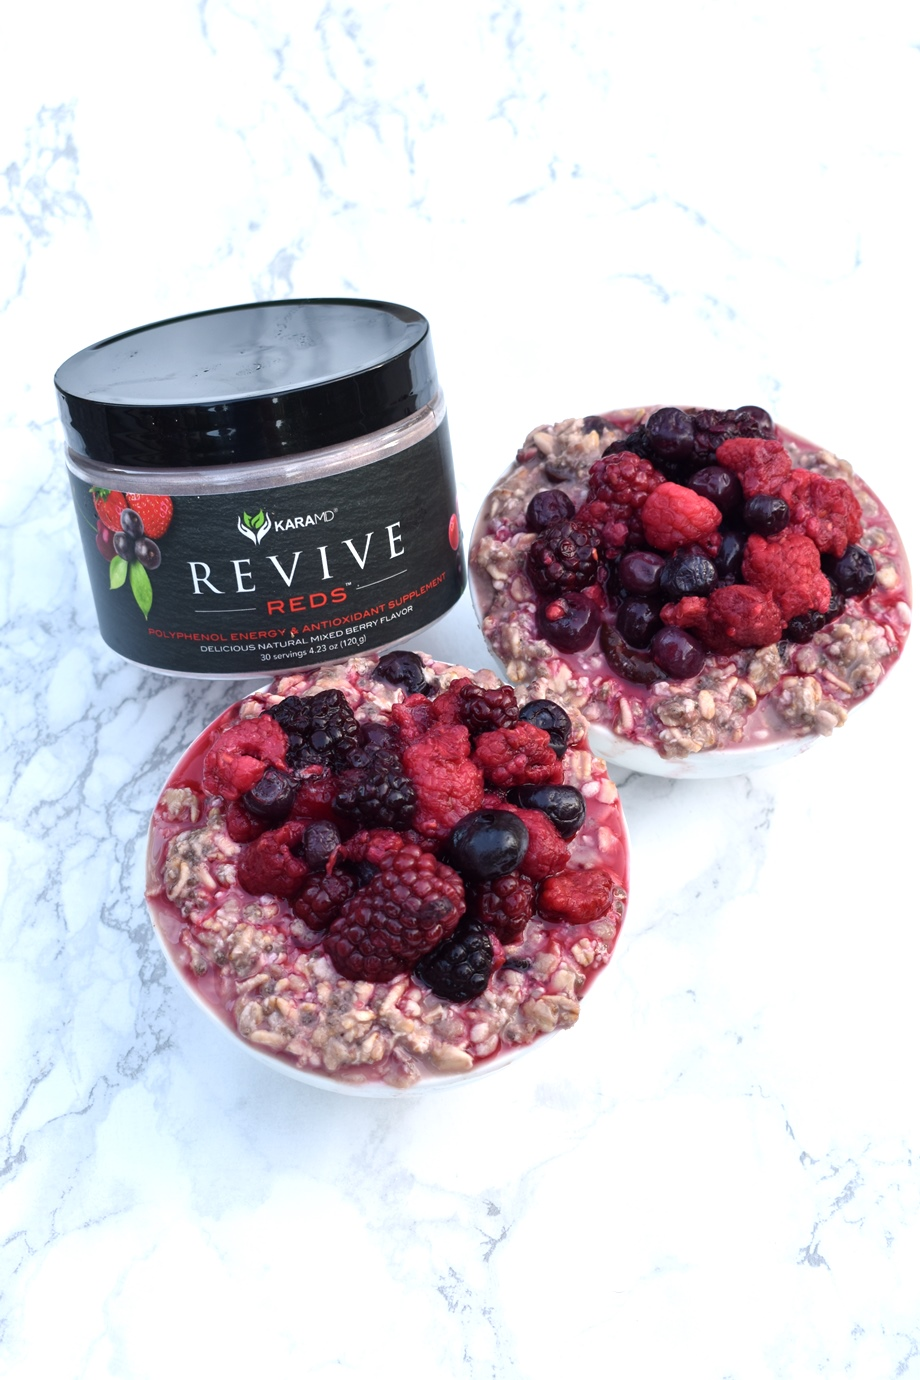 2 bowls of oatmeal topped with berries